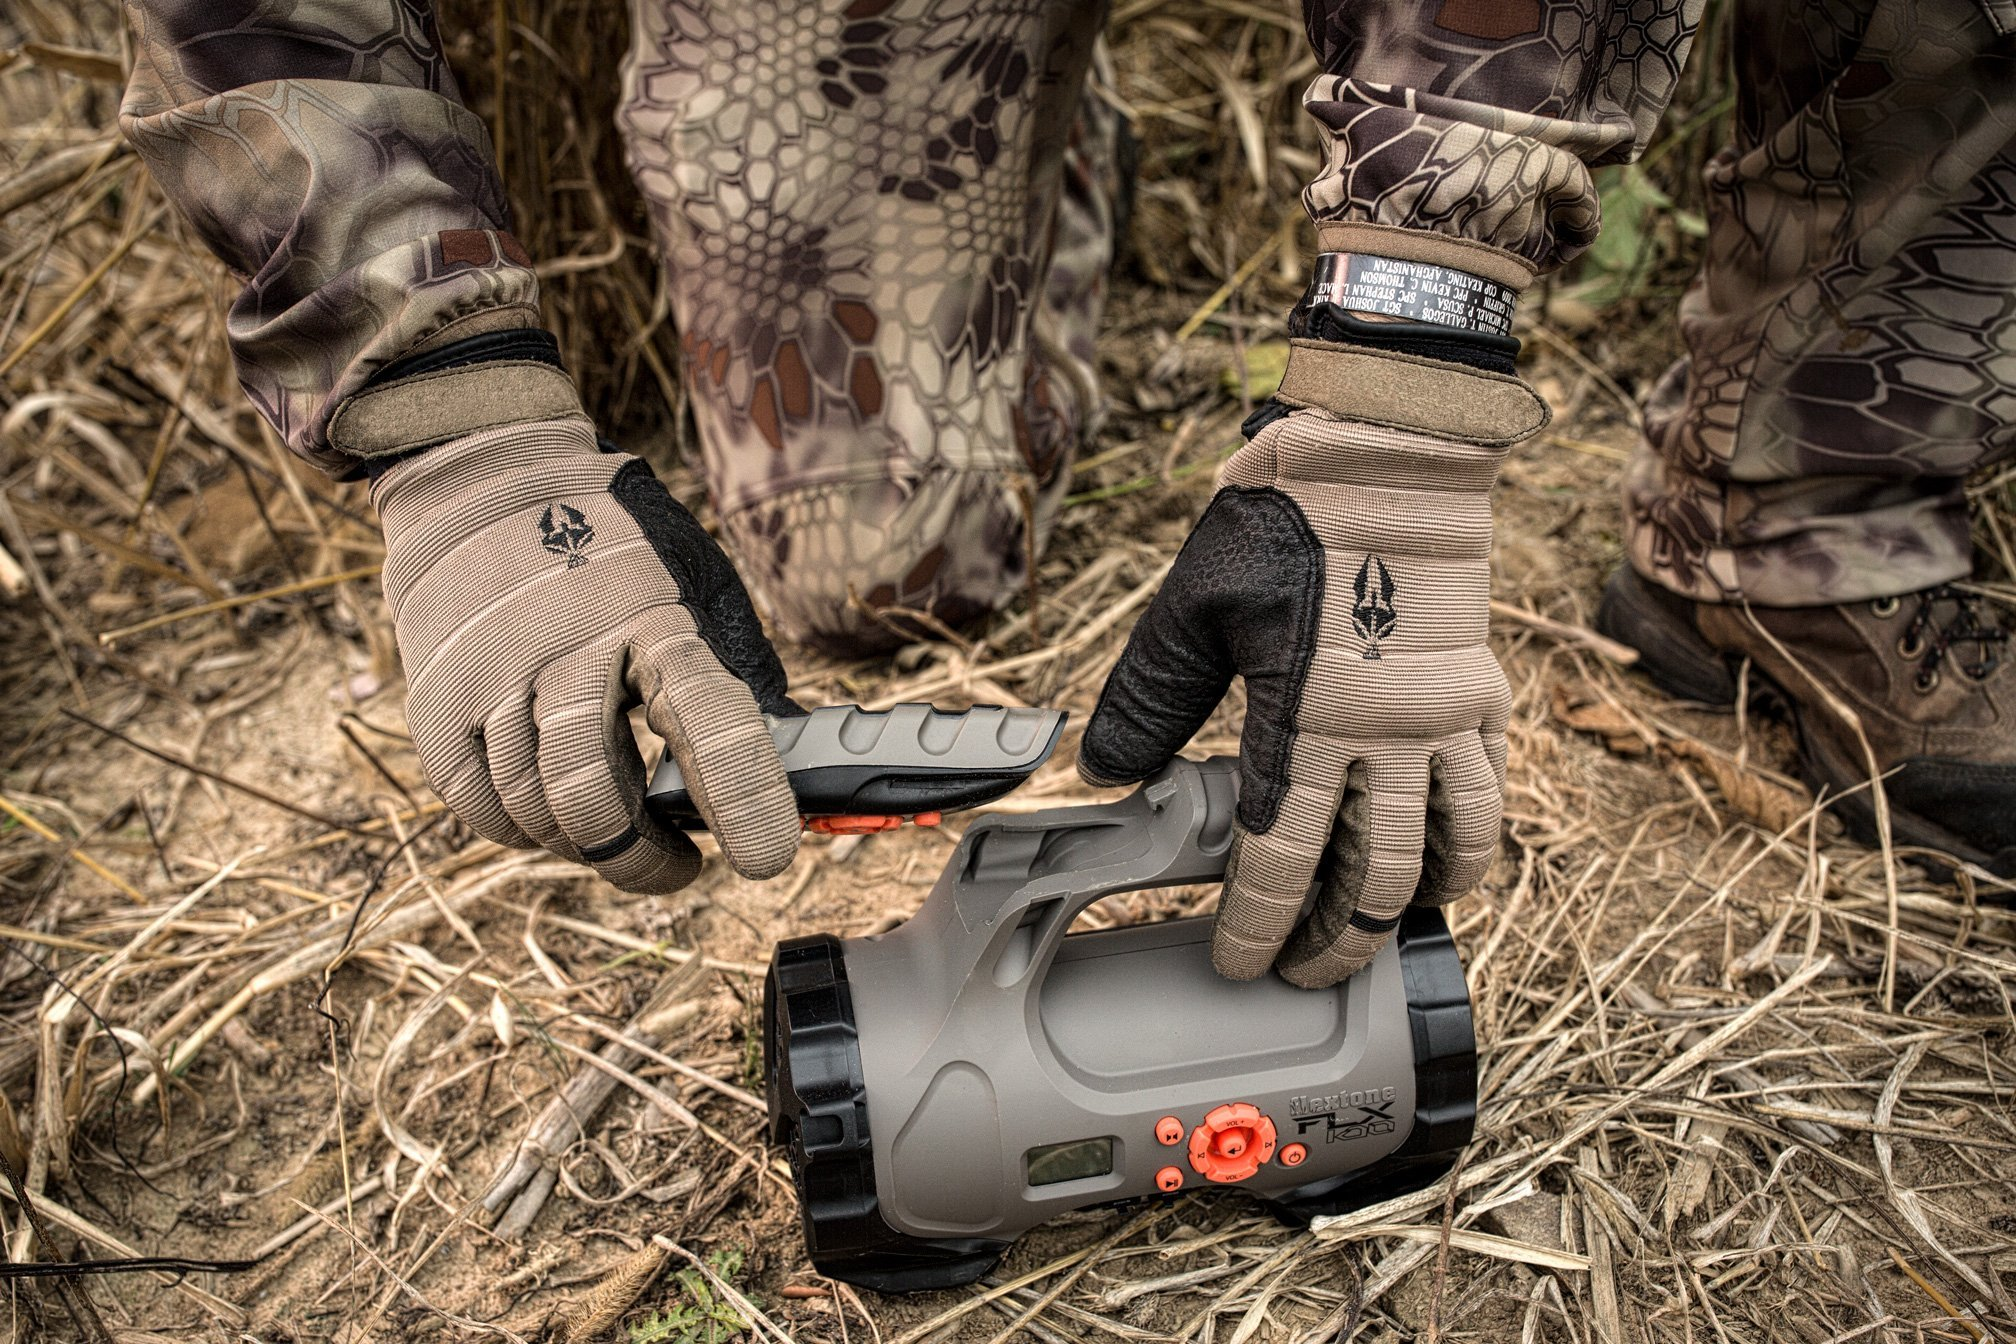 Wildgame Innovations Flex100 Electronic Game Call with Remote